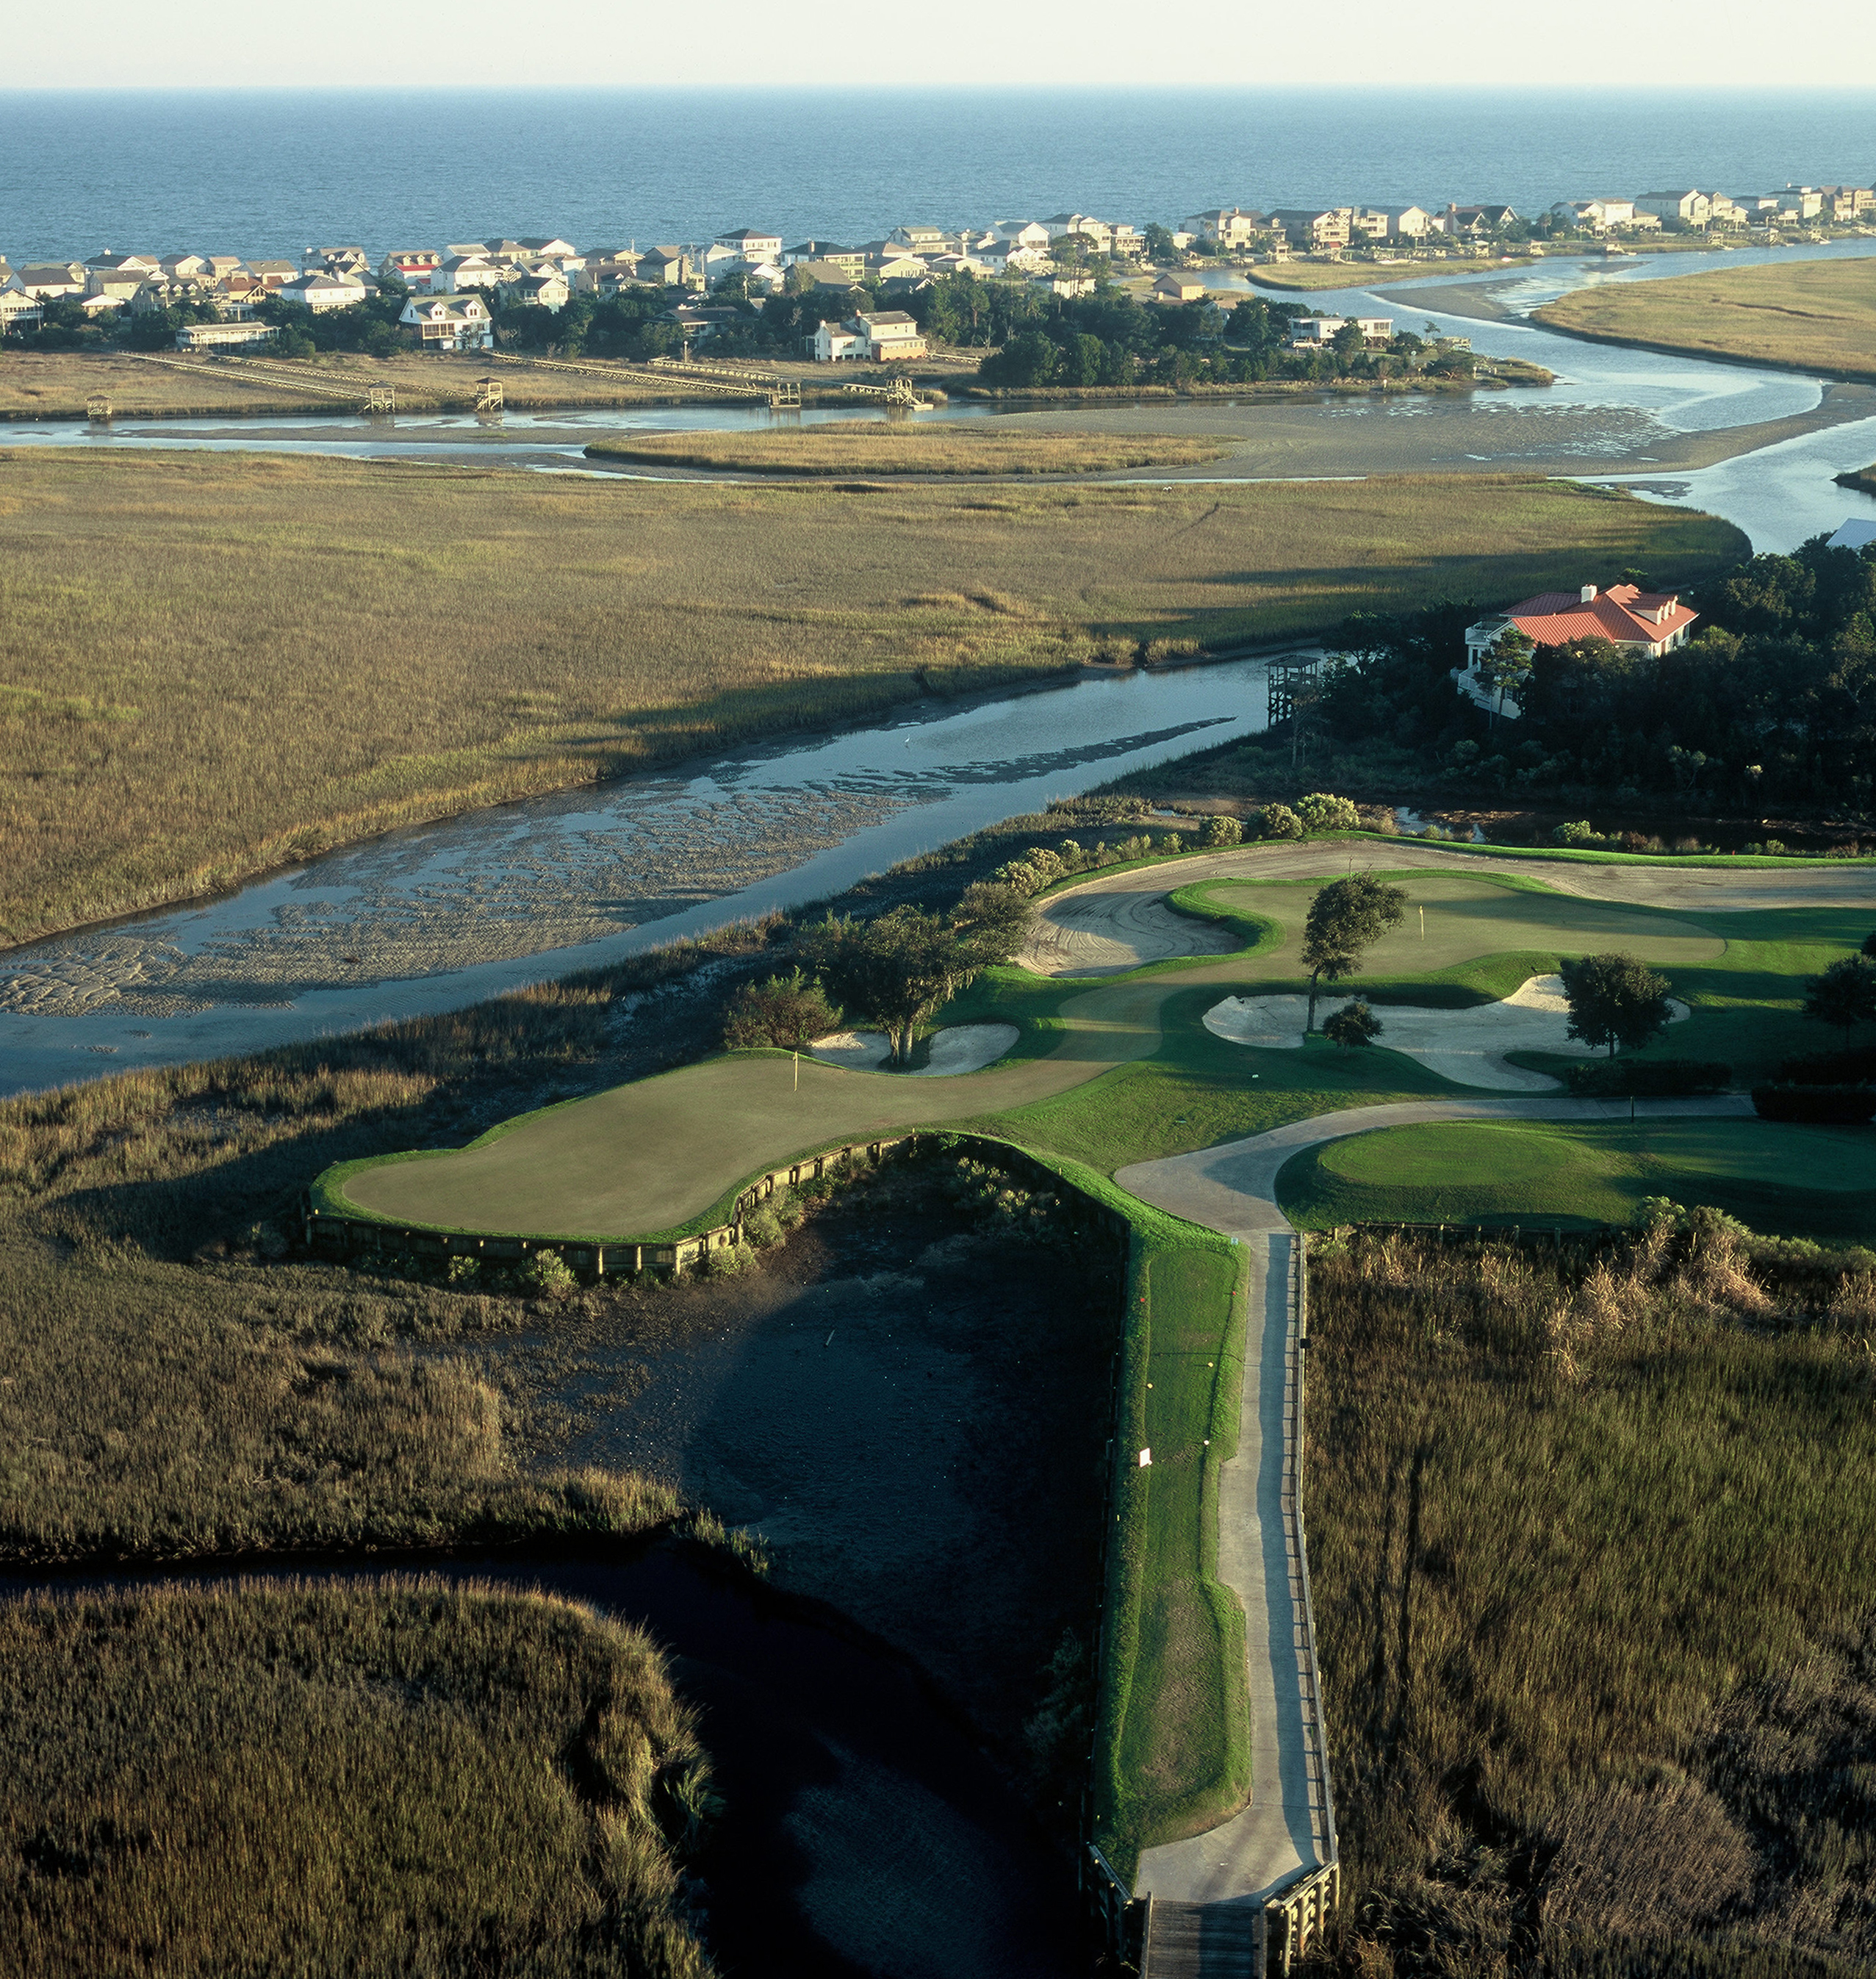 View from the air showing the 13th green and marsh area